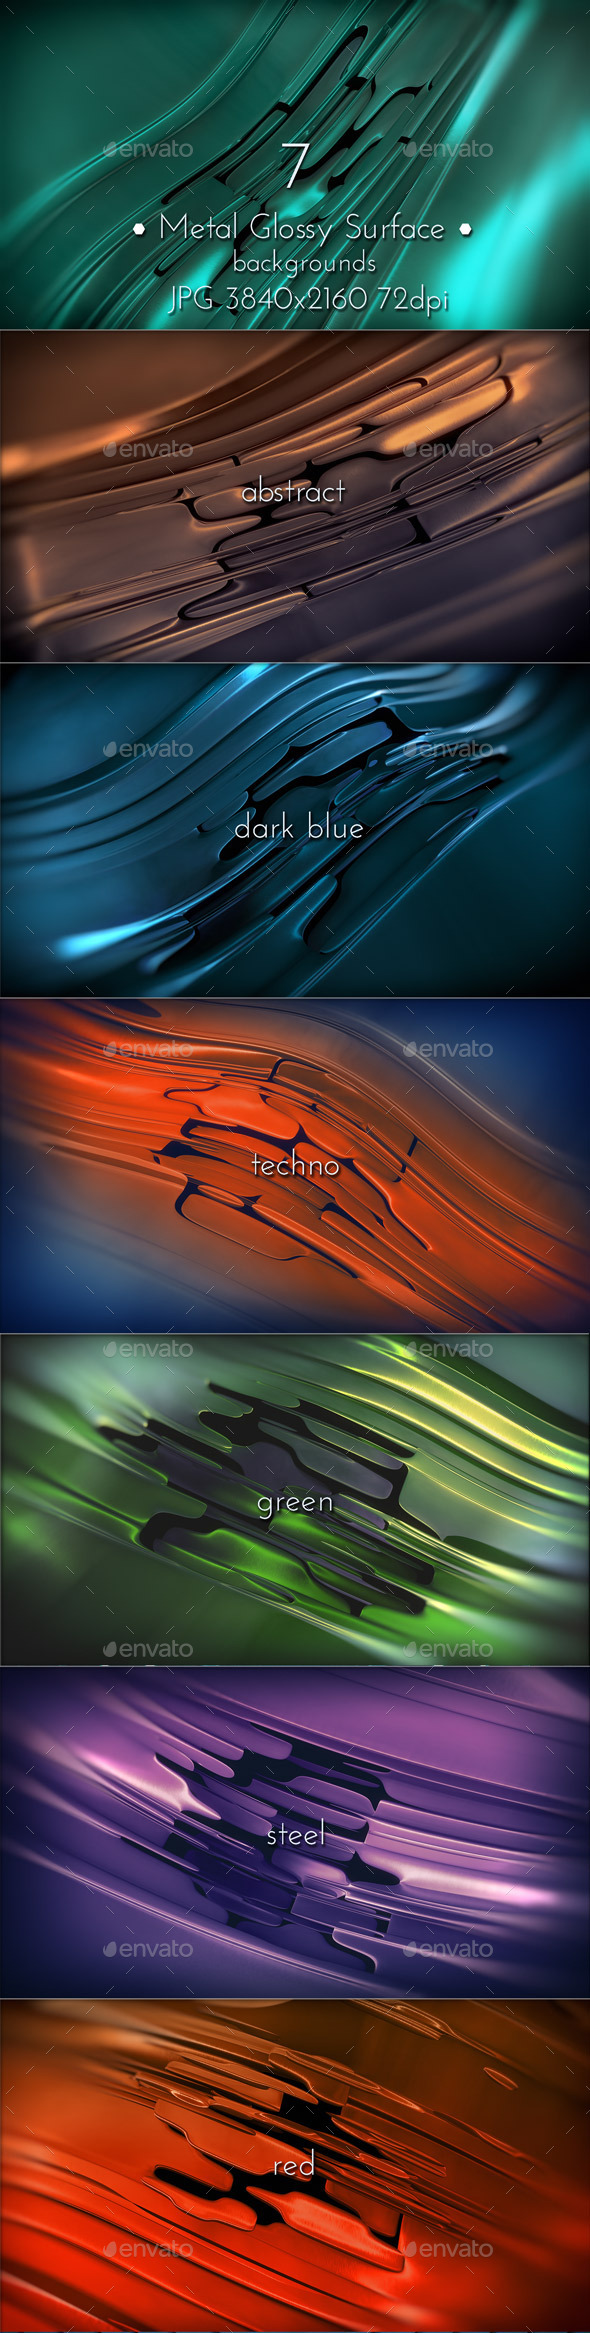 Metal Glossy Surface - Tech / Futuristic Backgrounds